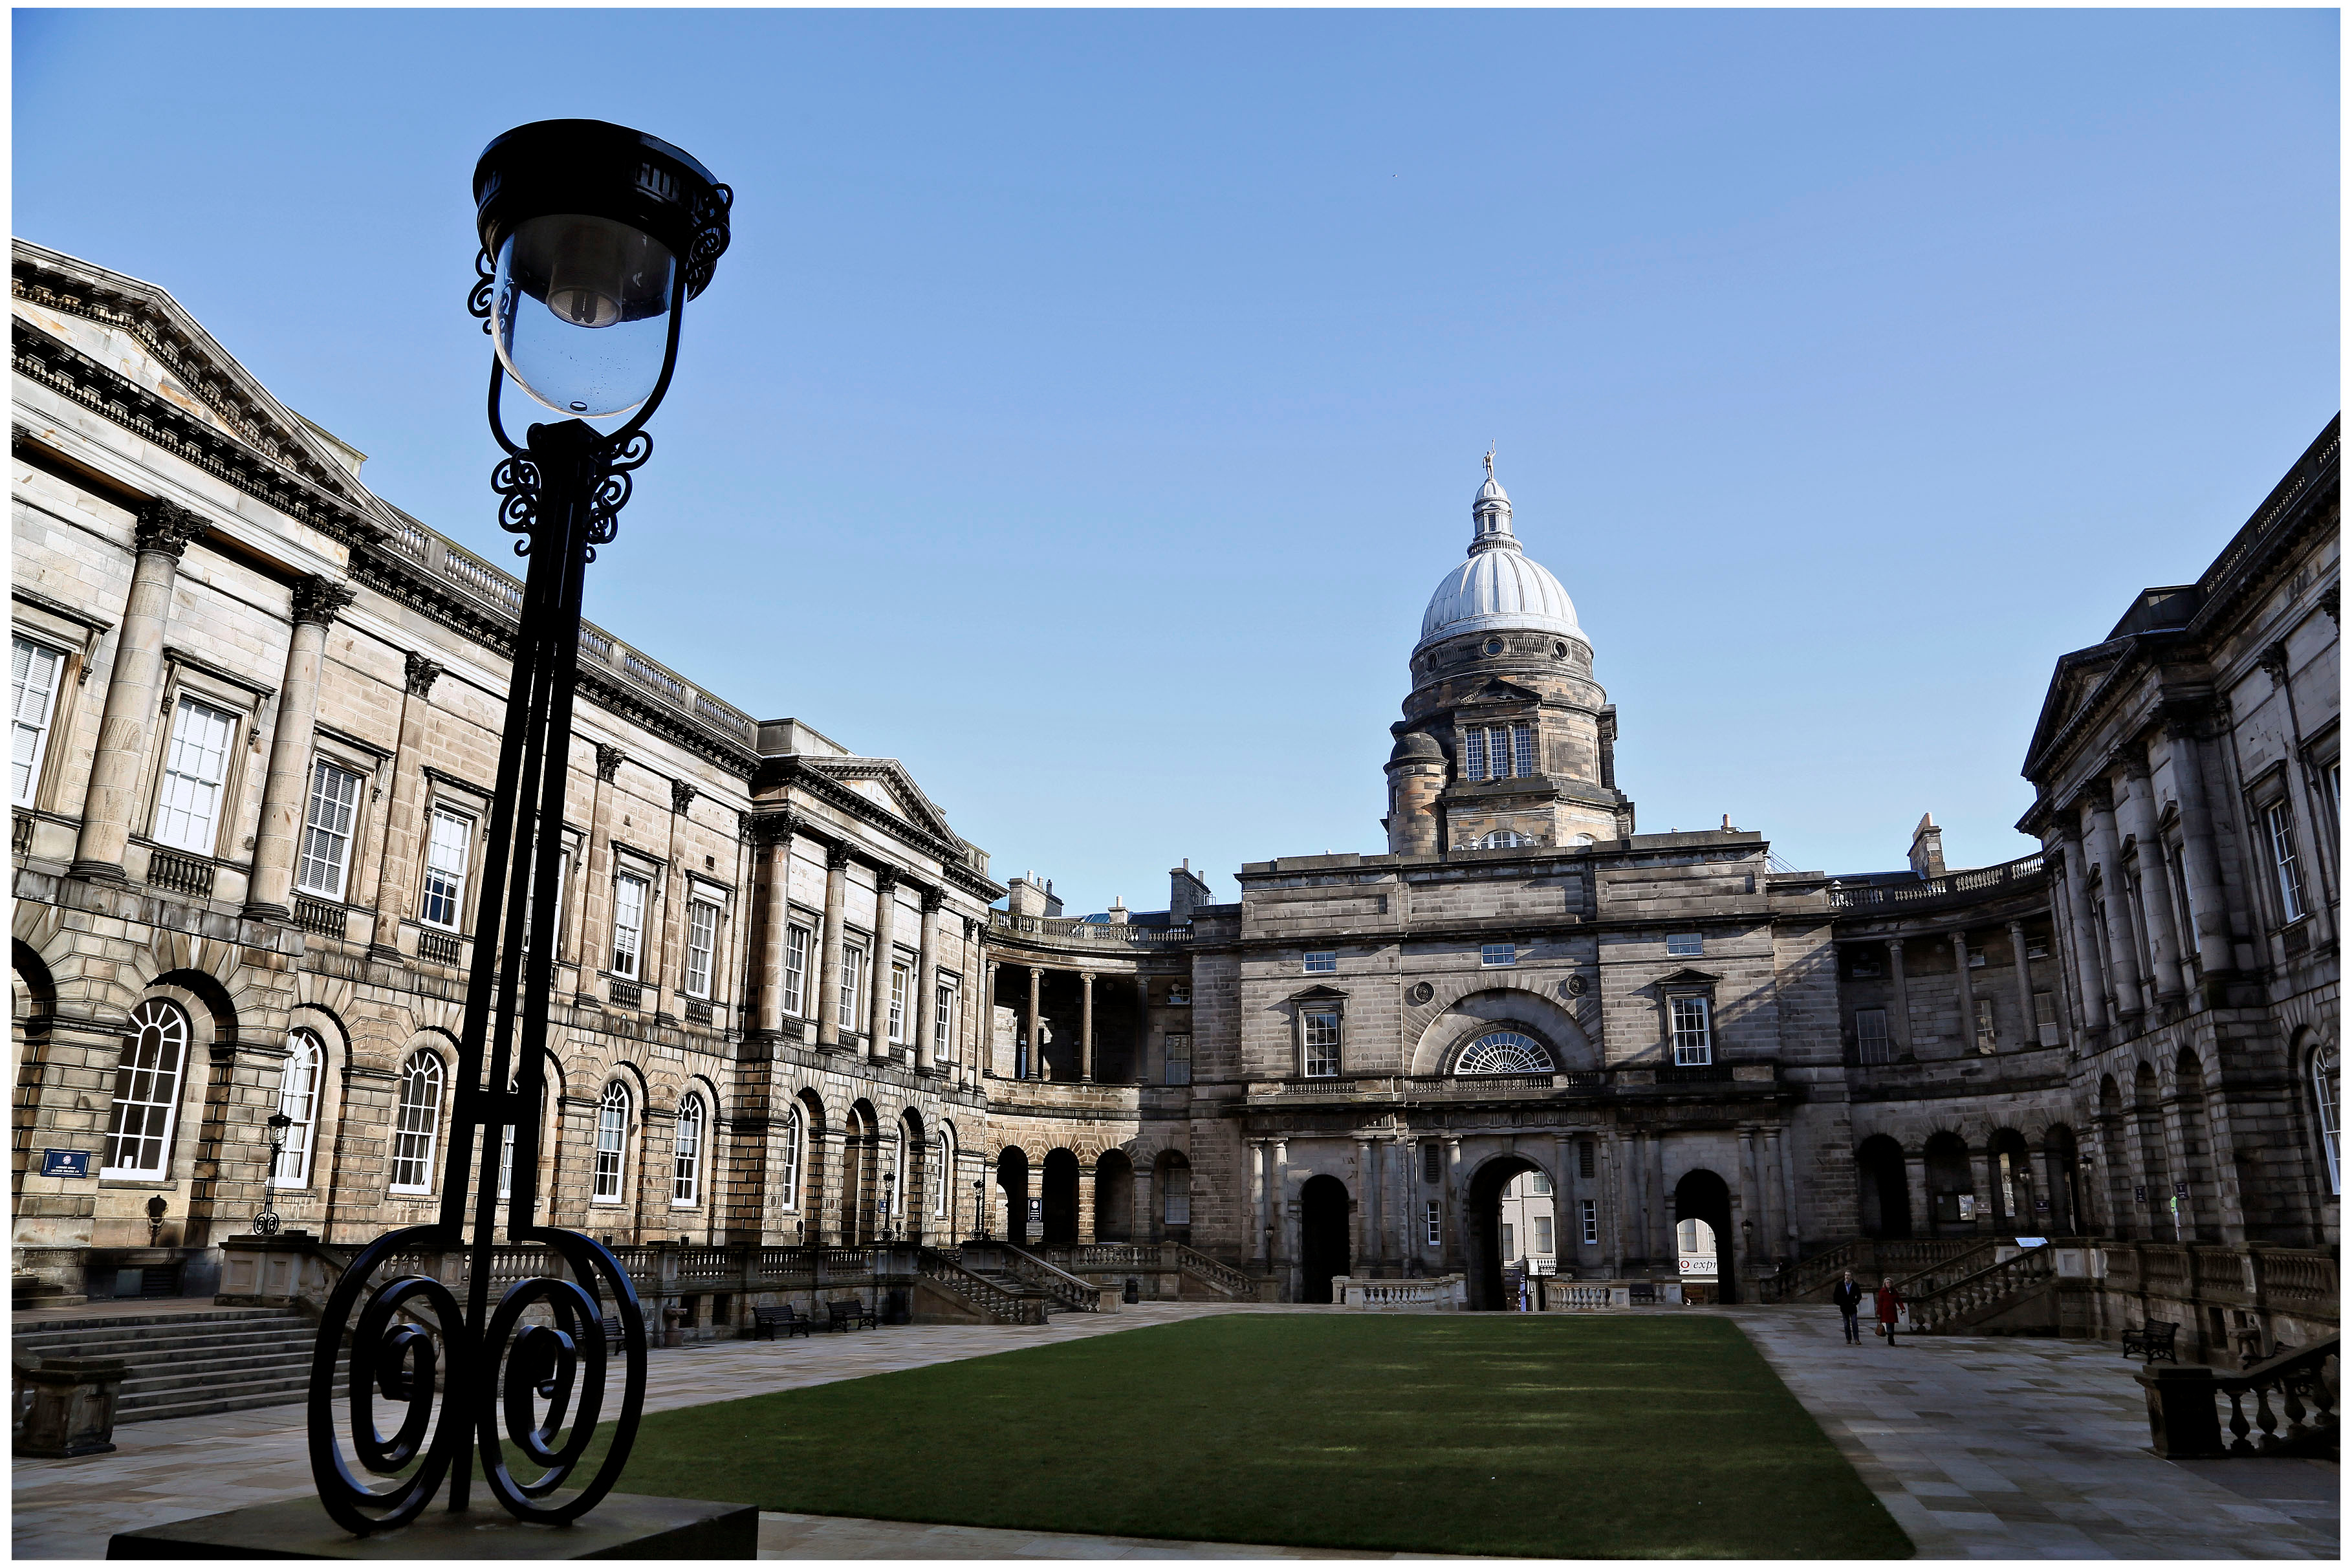 ASSA ABLOY opens doors at Edinburgh University